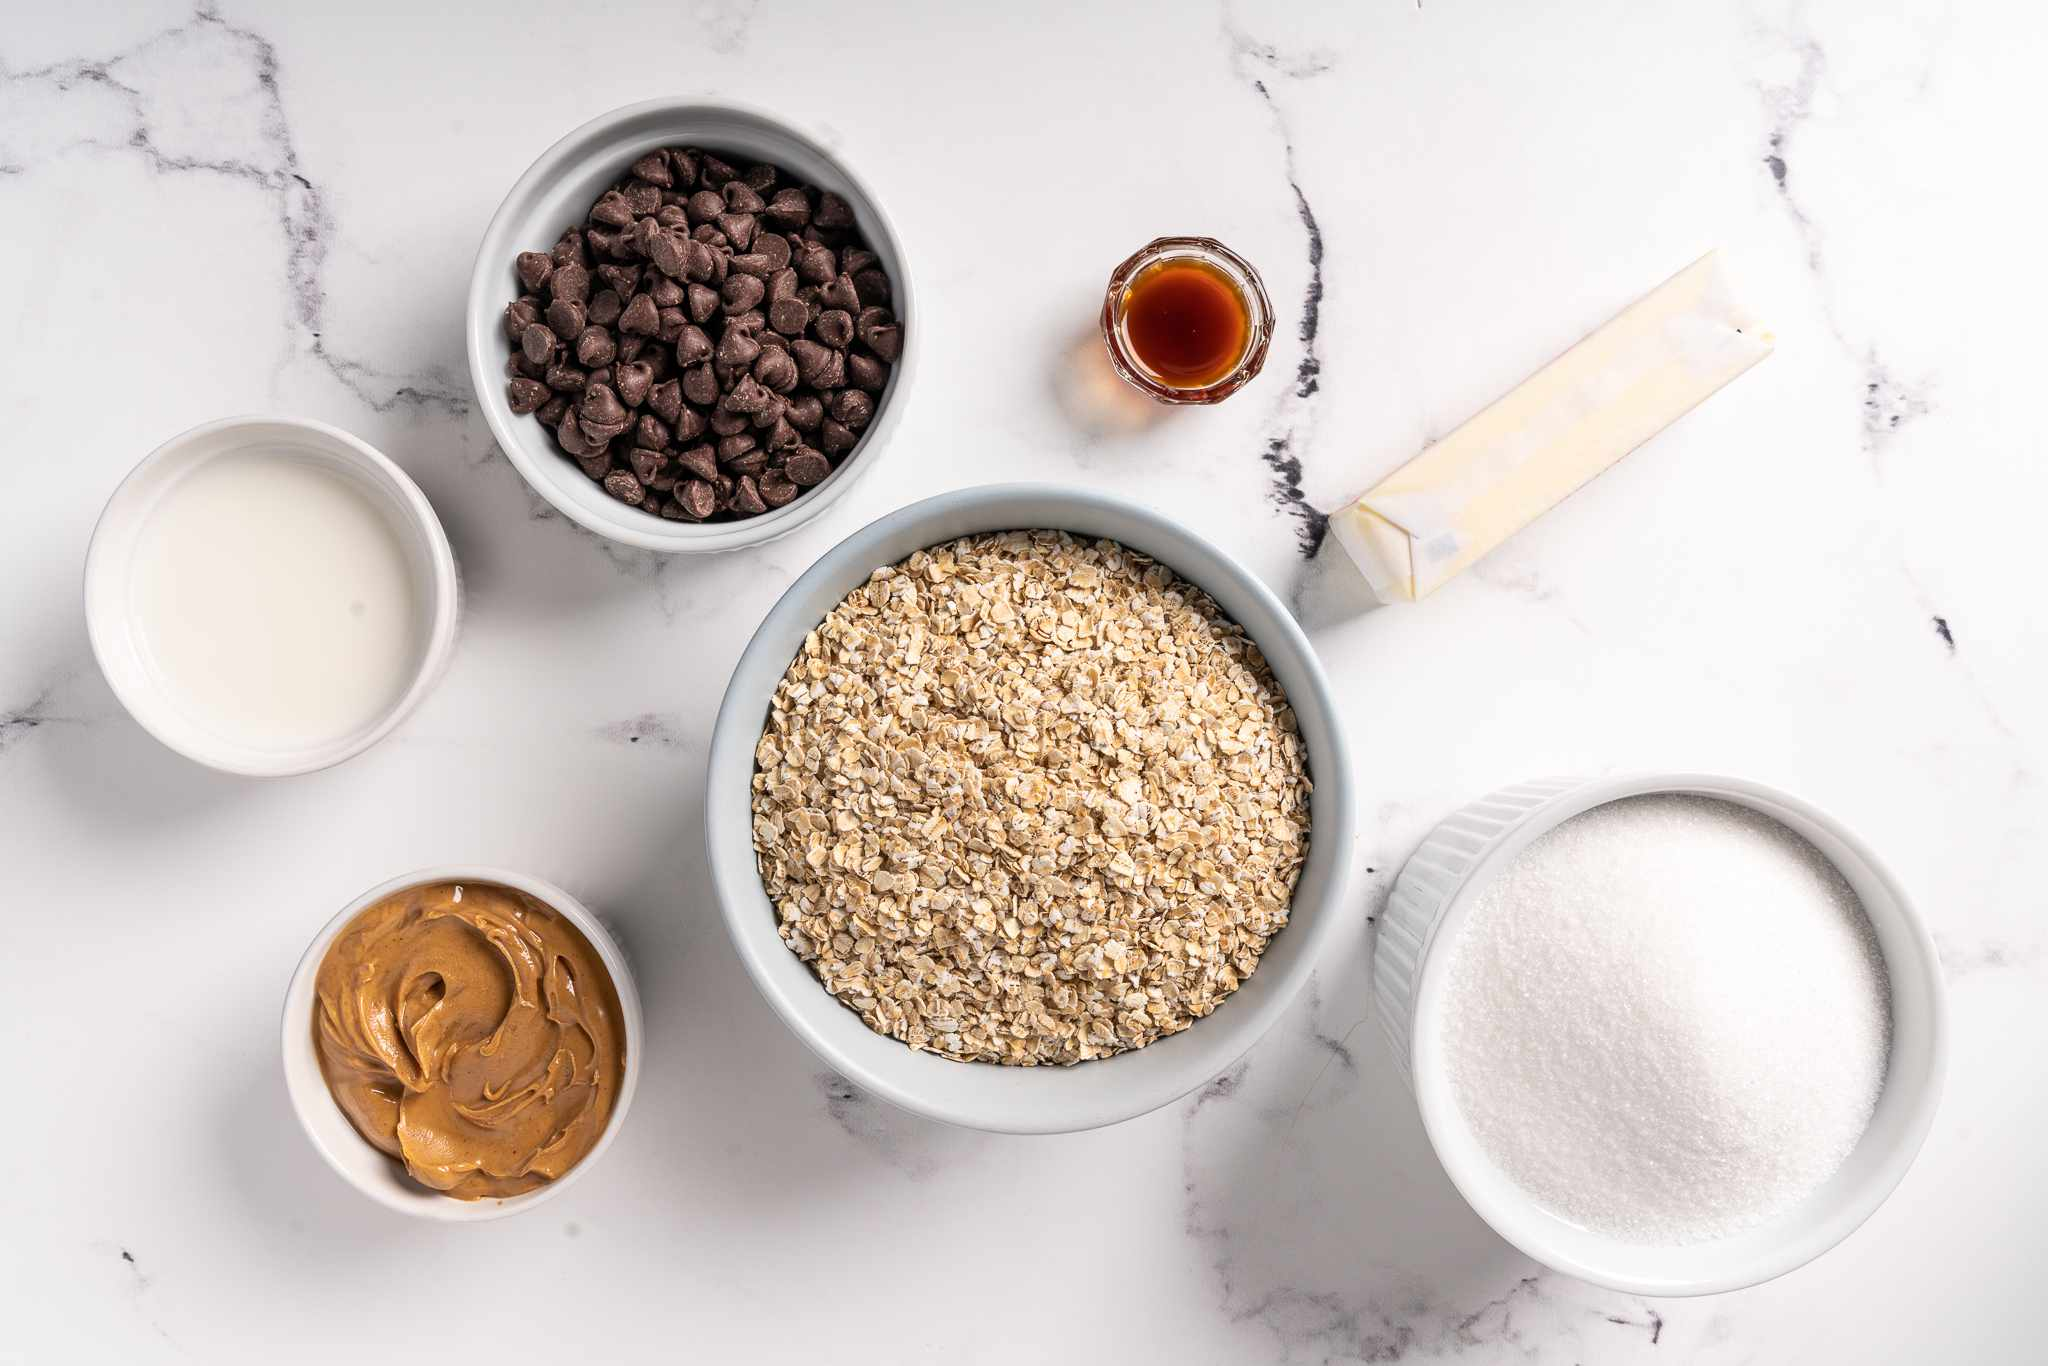 Ingredients for easy gluten-free chocolate oatmeal no-bake cookies